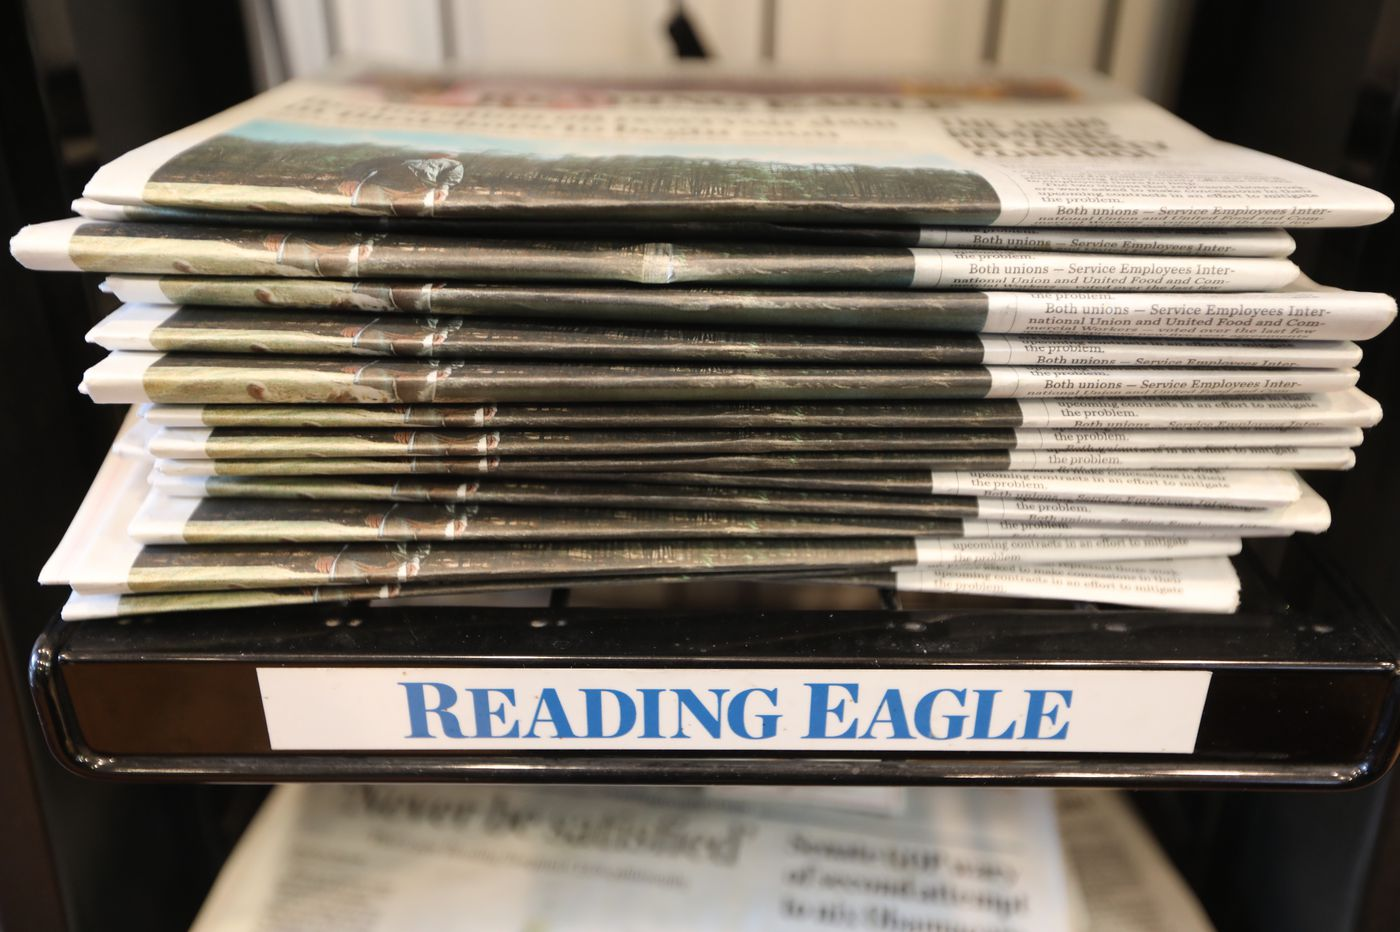 MediaNews Group's attrition plan slashes about 50 percent of Reading Eagle Co. jobs